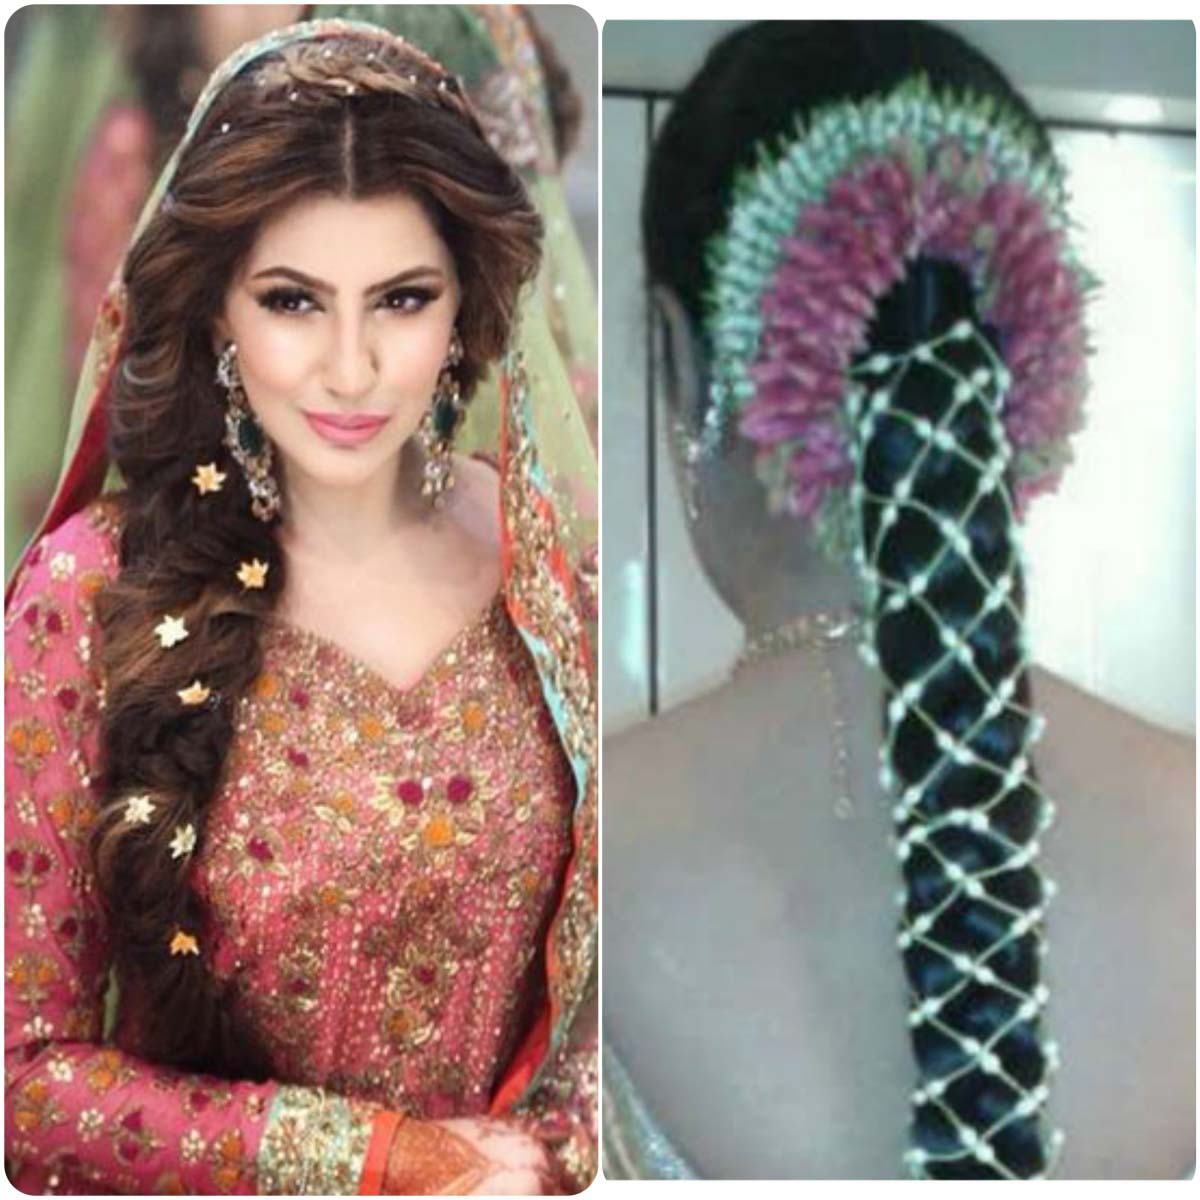 Pakistani wedding hairstyles for long hair top pakistan indian wedding hairstyles for brides 2016yloplanet cutebridalhairstylesforlonghairfashionisers3 junglespirit Image collections